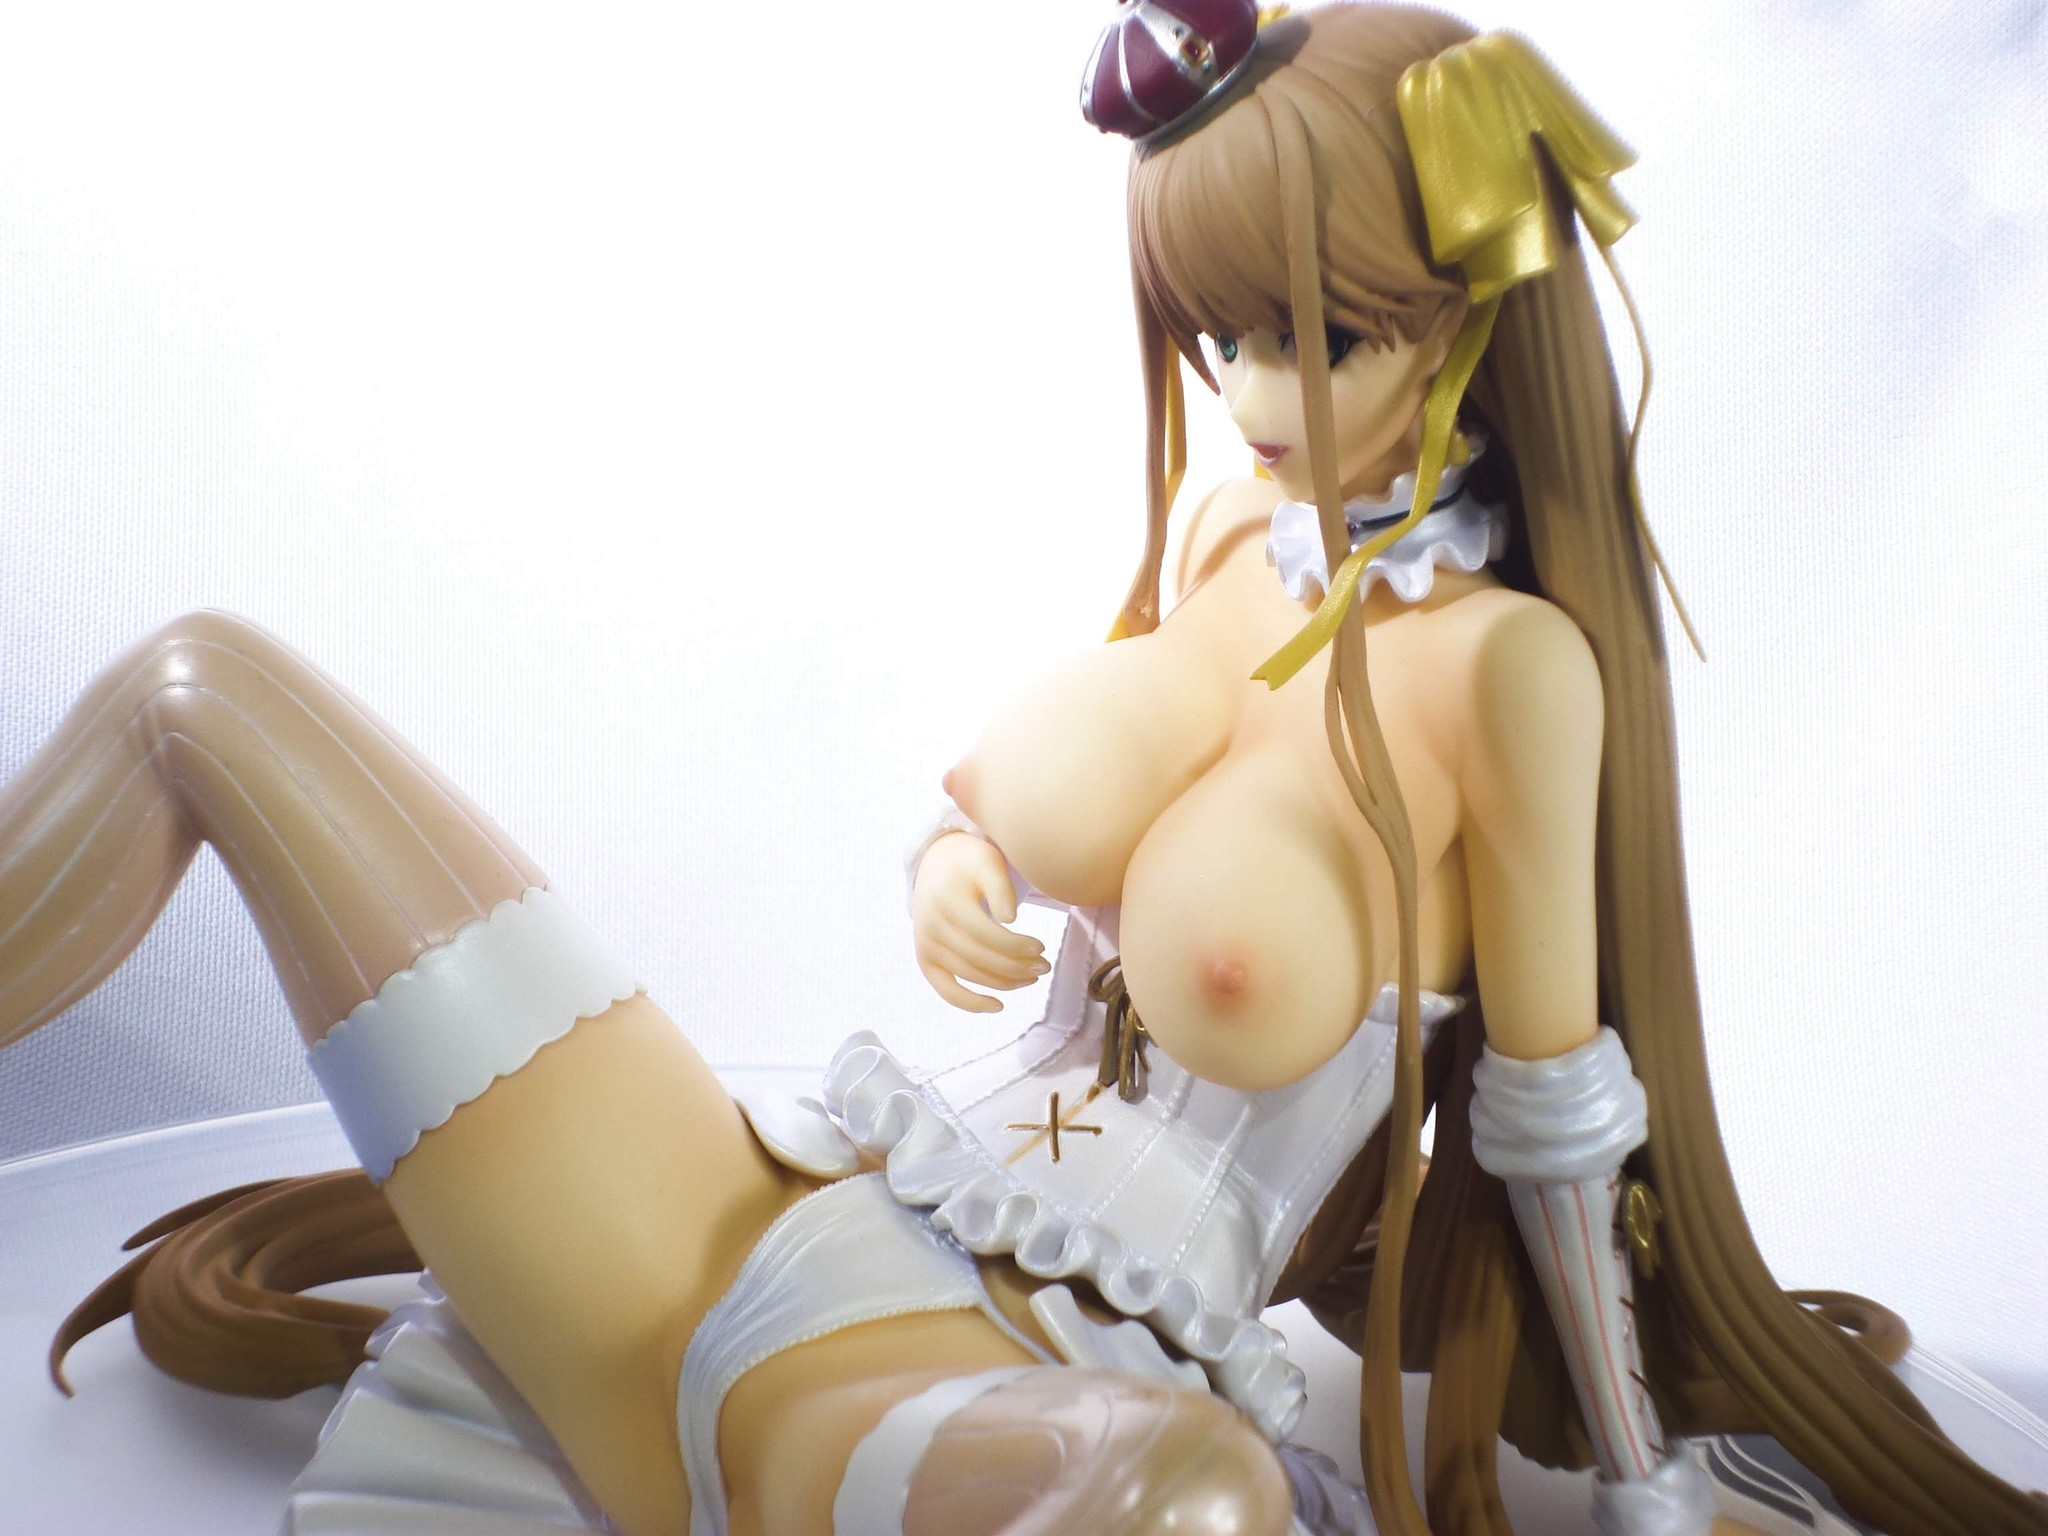 https://static.myfigurecollection.net/upload/pictures/2021/10/20/2888766.jpeg